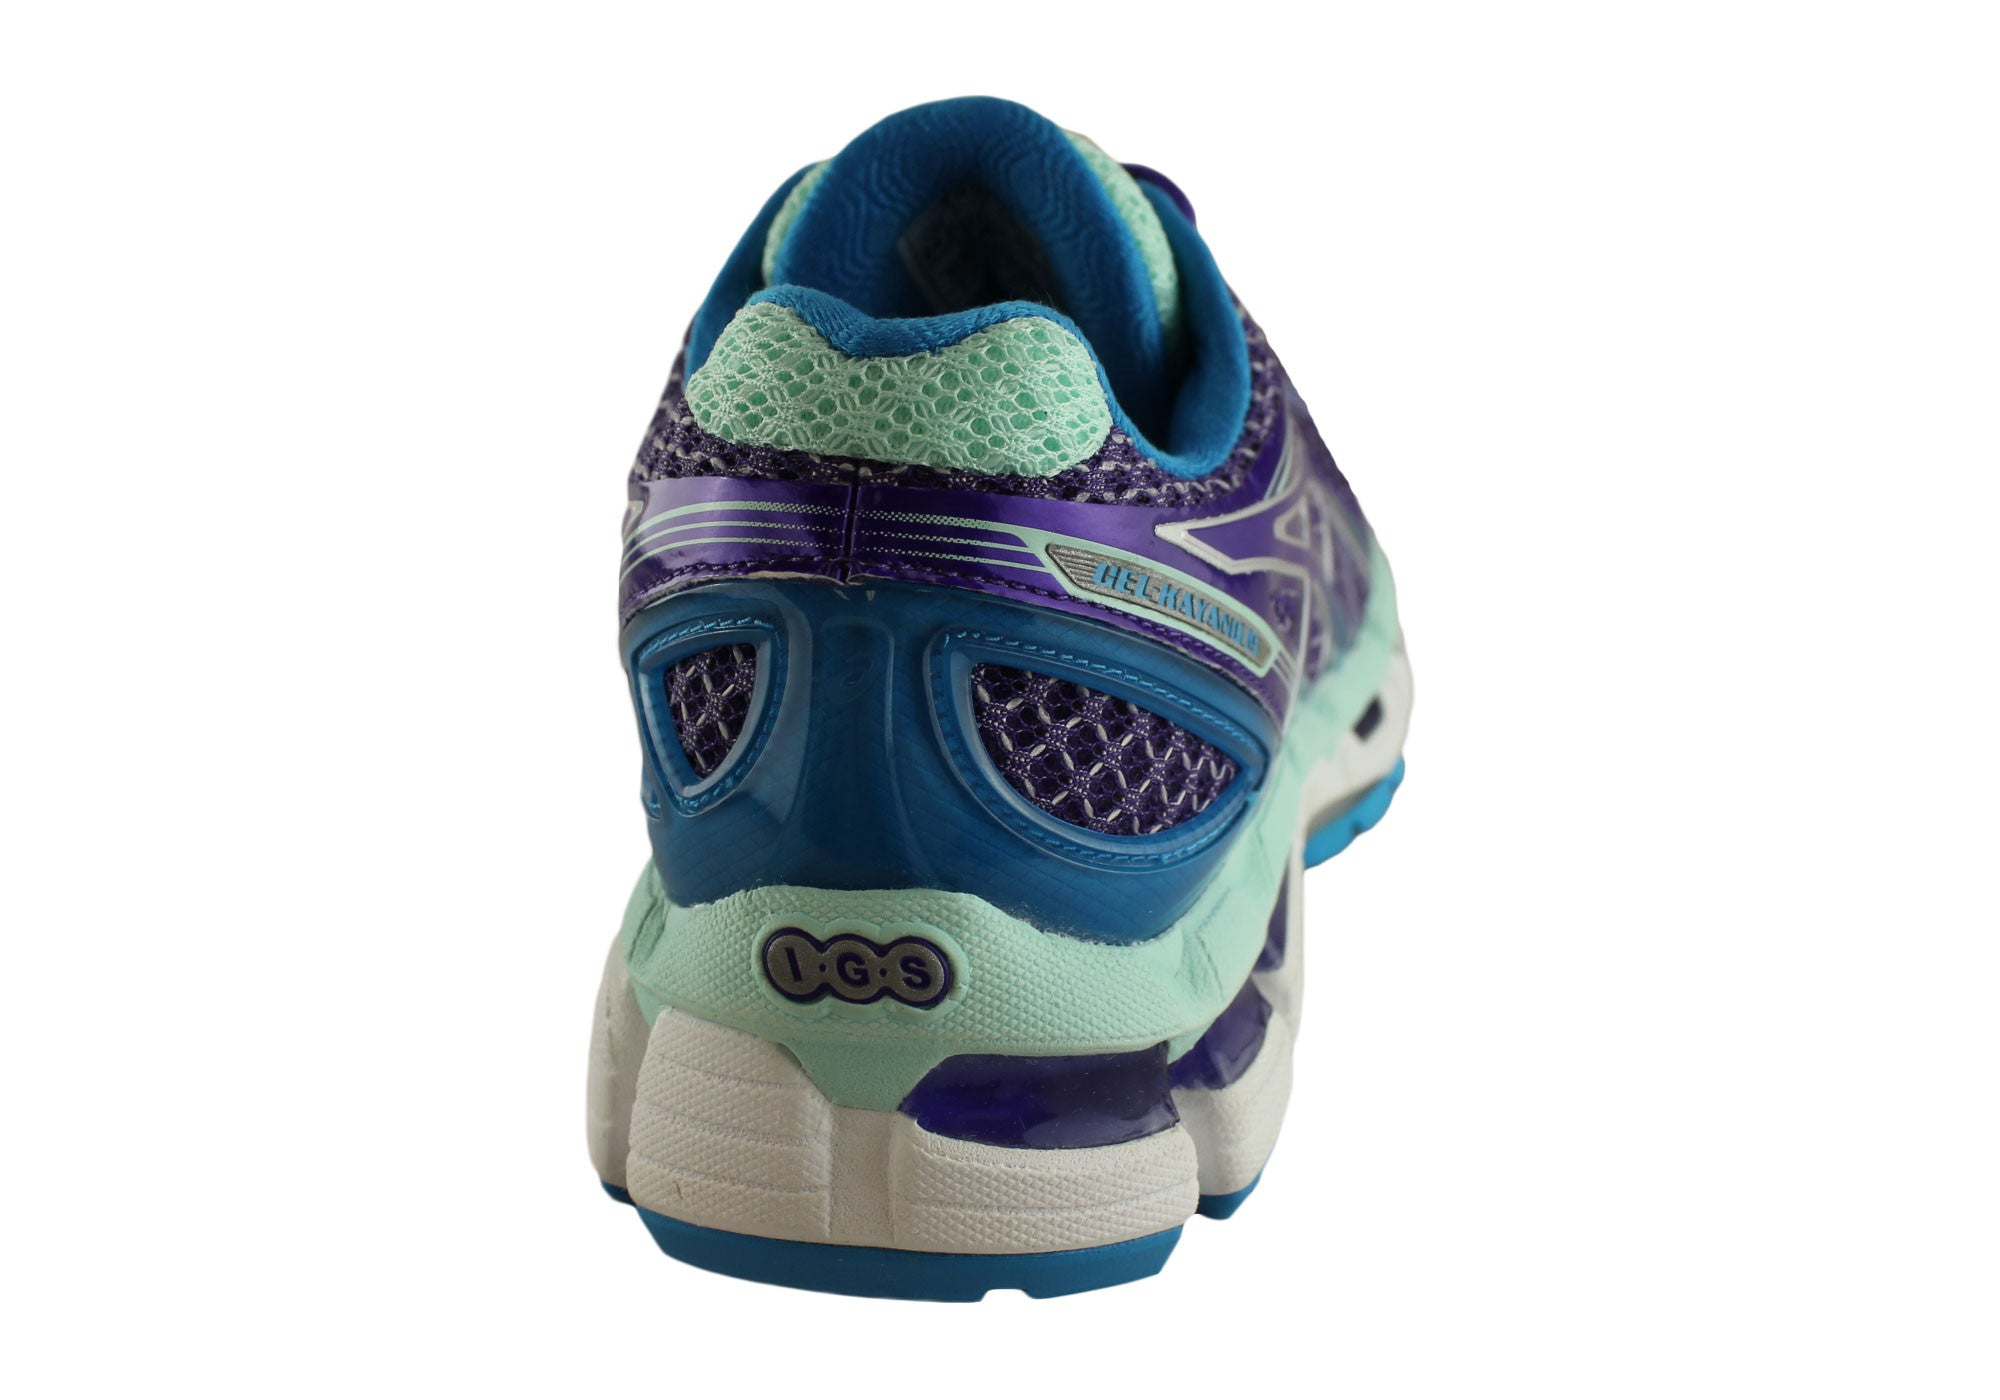 Asics Gel Kayano 19 Womens Running Shoes